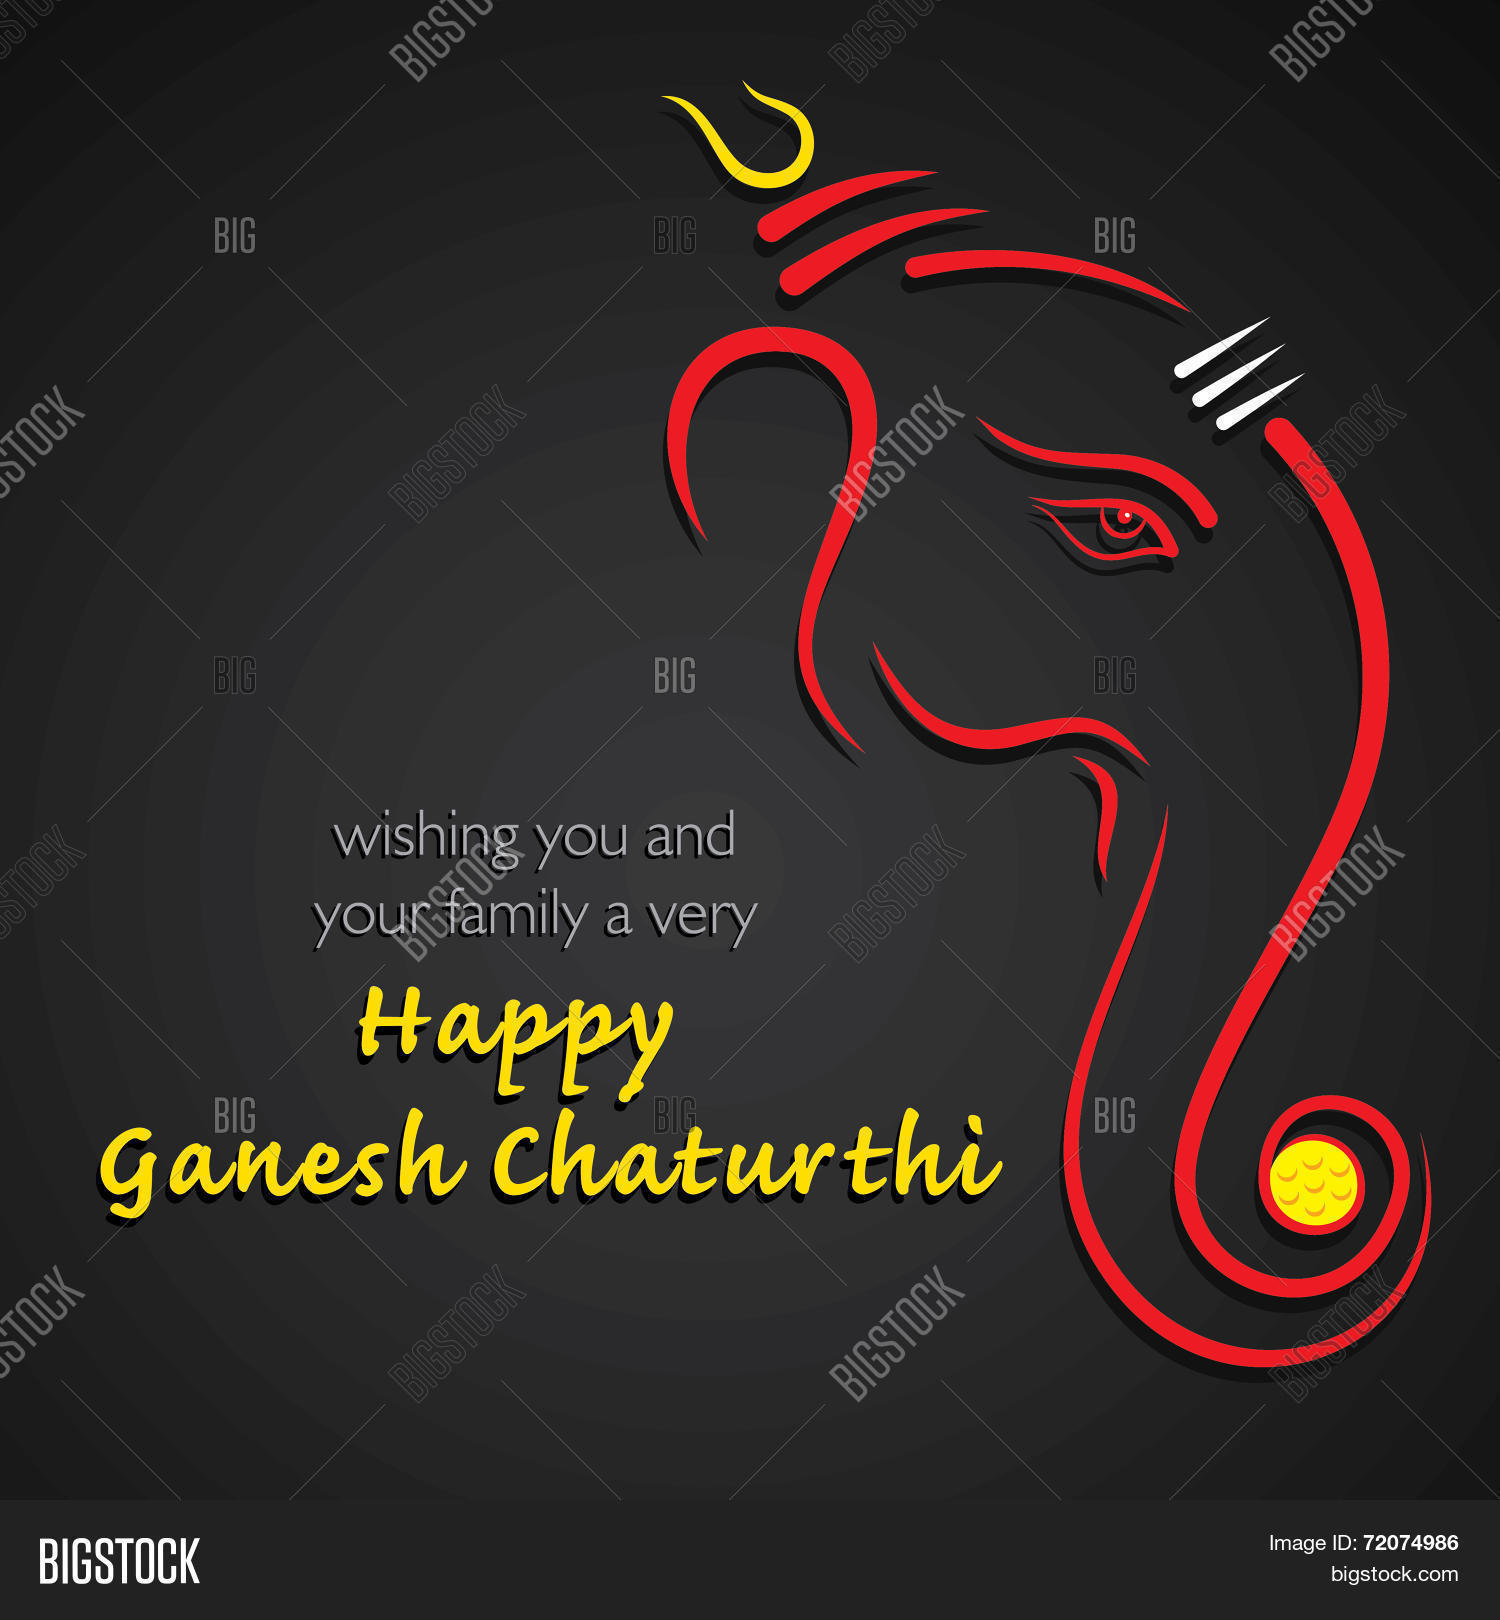 Happy ganesh vector photo free trial bigstock happy ganesh chaturthi festival greeting card background vector m4hsunfo